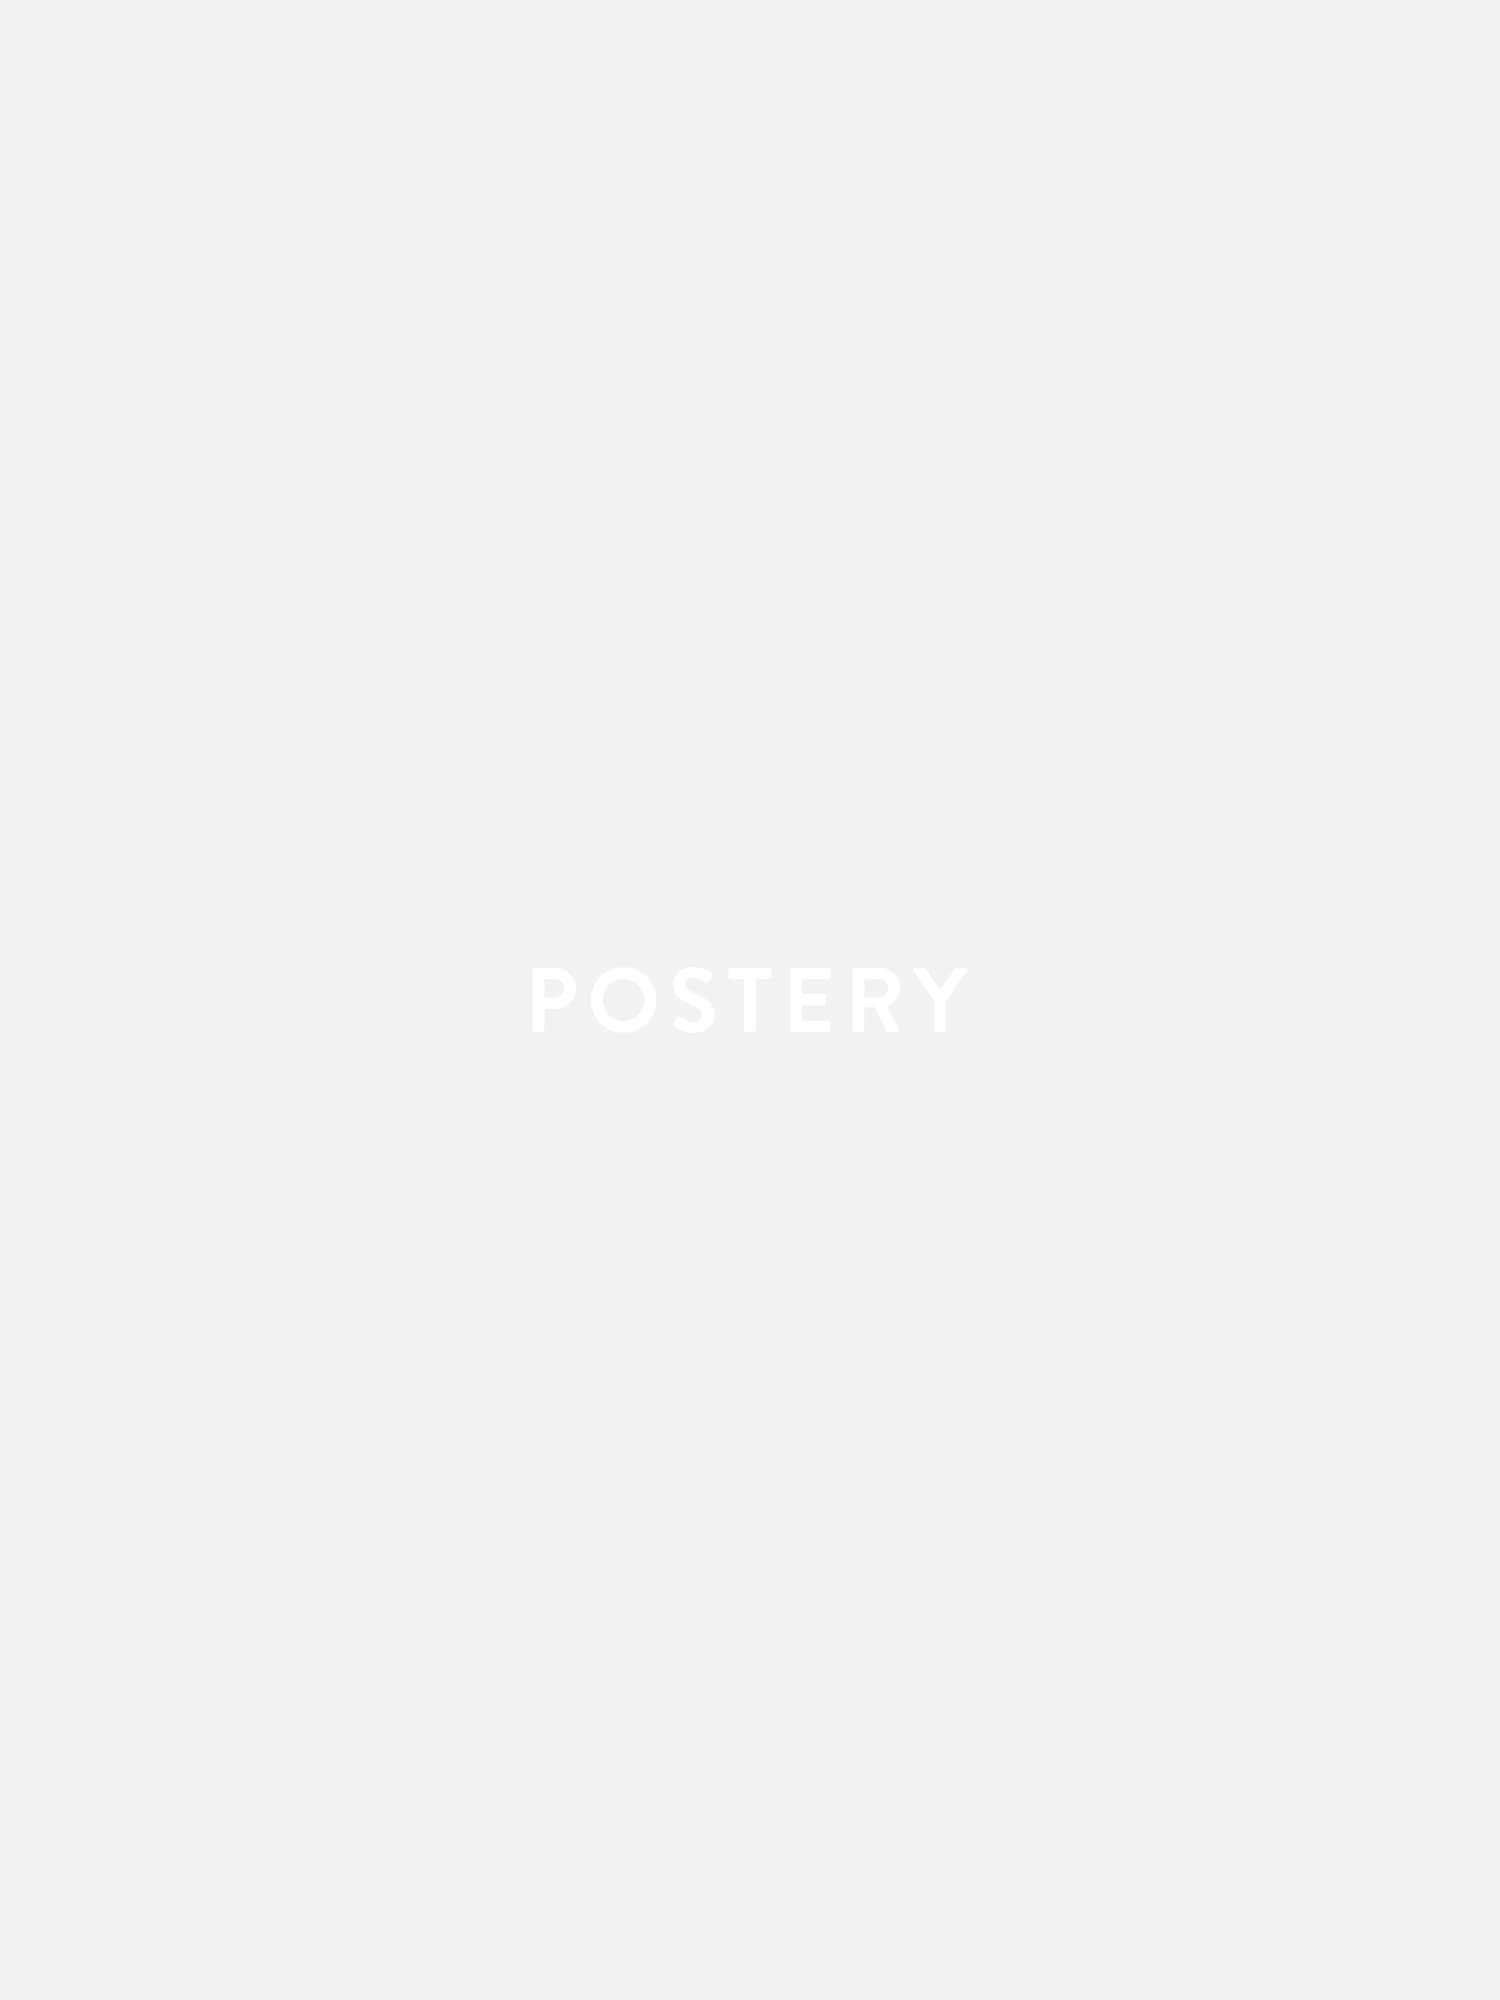 Classic Cocktails Poster